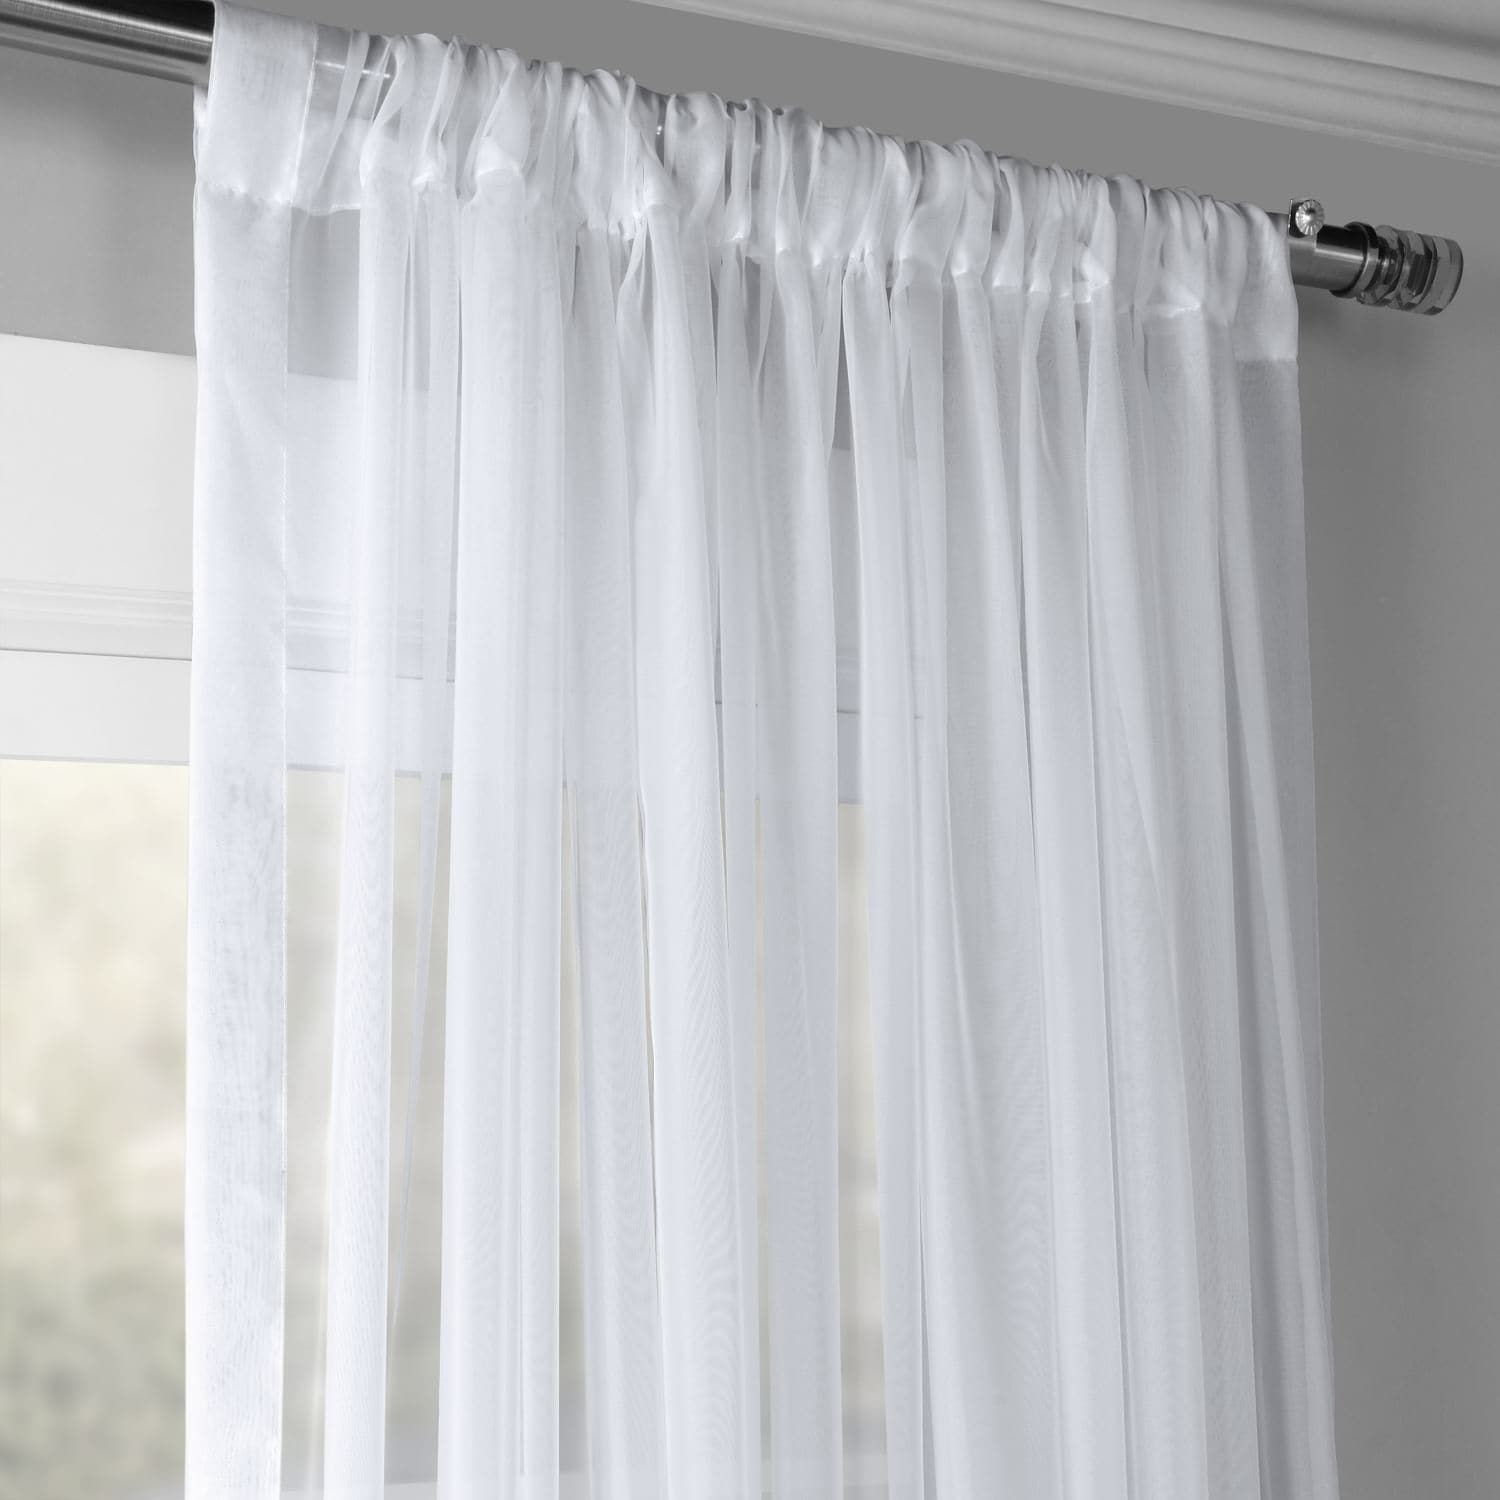 Extra Wide Solid White Voile Poly Sheer Curtain Panel Curtains Sheer Curtain Sheer Curtain Panels